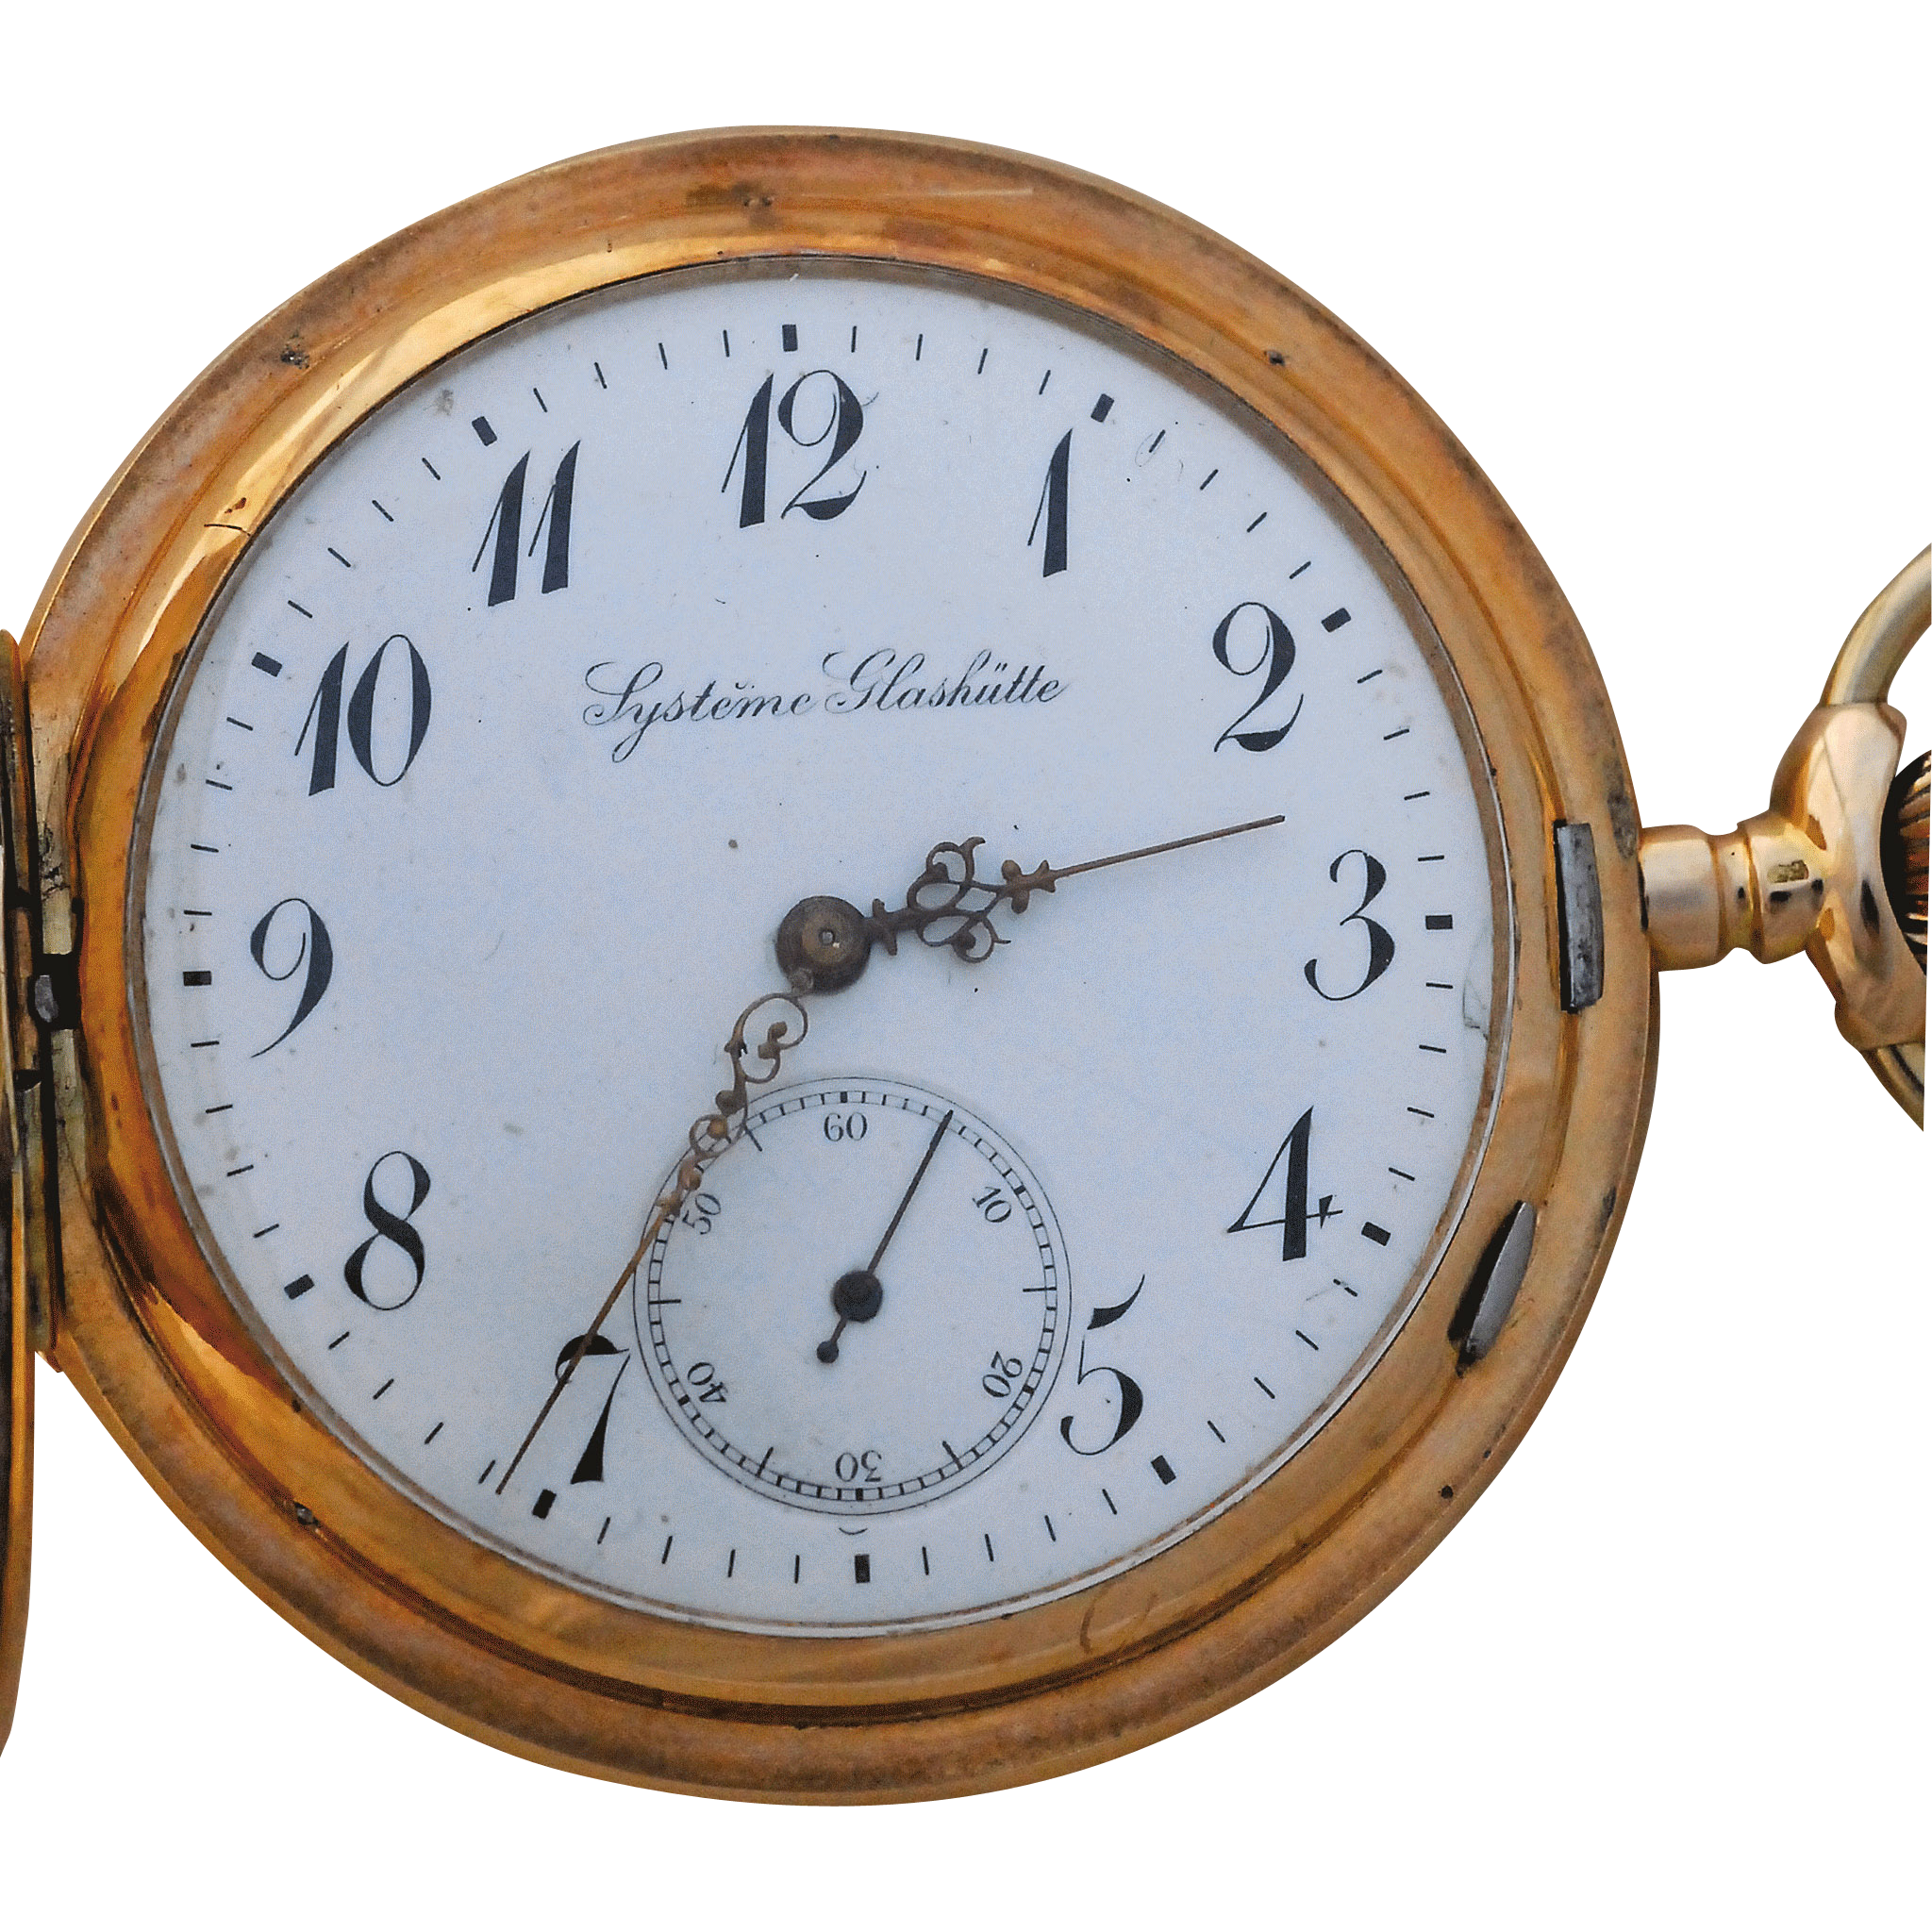 14 Karat Gold Hunters Case Pocket Watch by System Glashutte